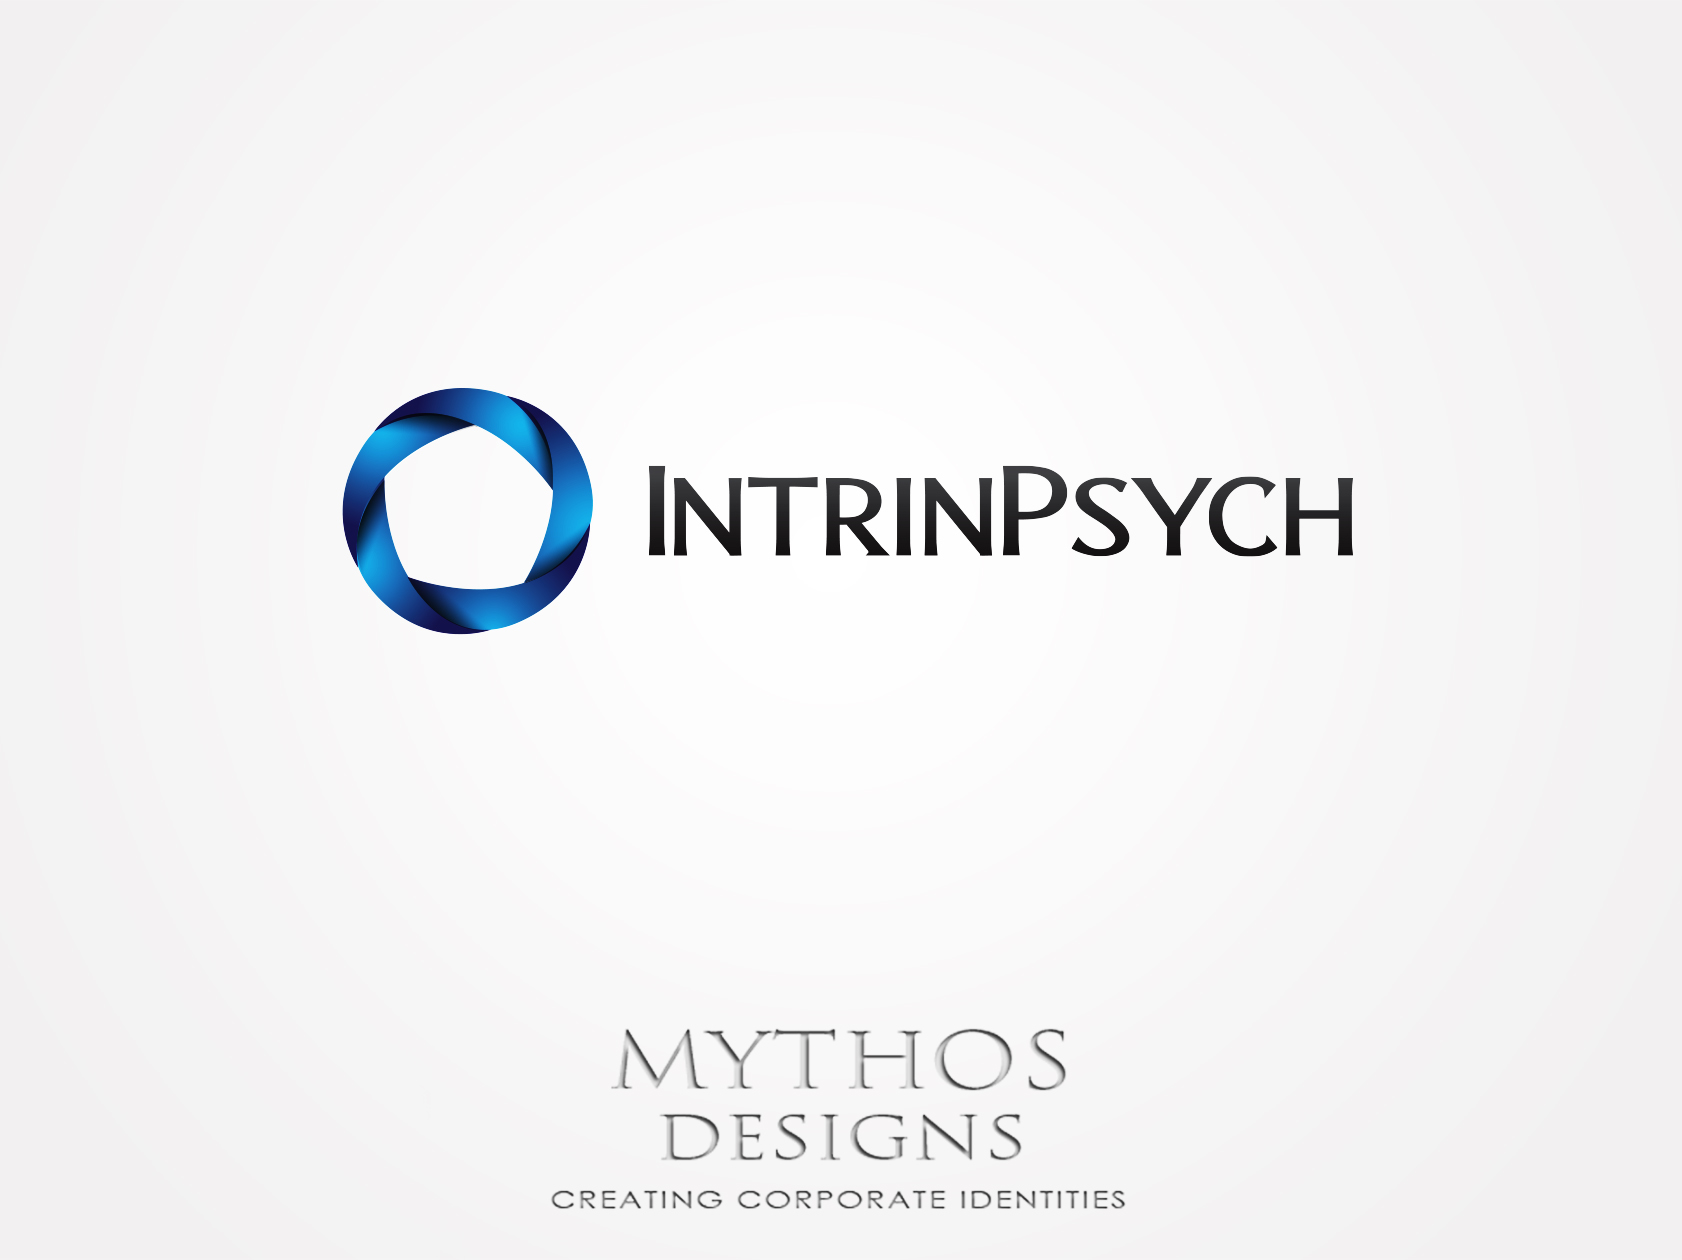 Logo Design by Mythos Designs - Entry No. 141 in the Logo Design Contest New Logo Design for IntrinPsych.